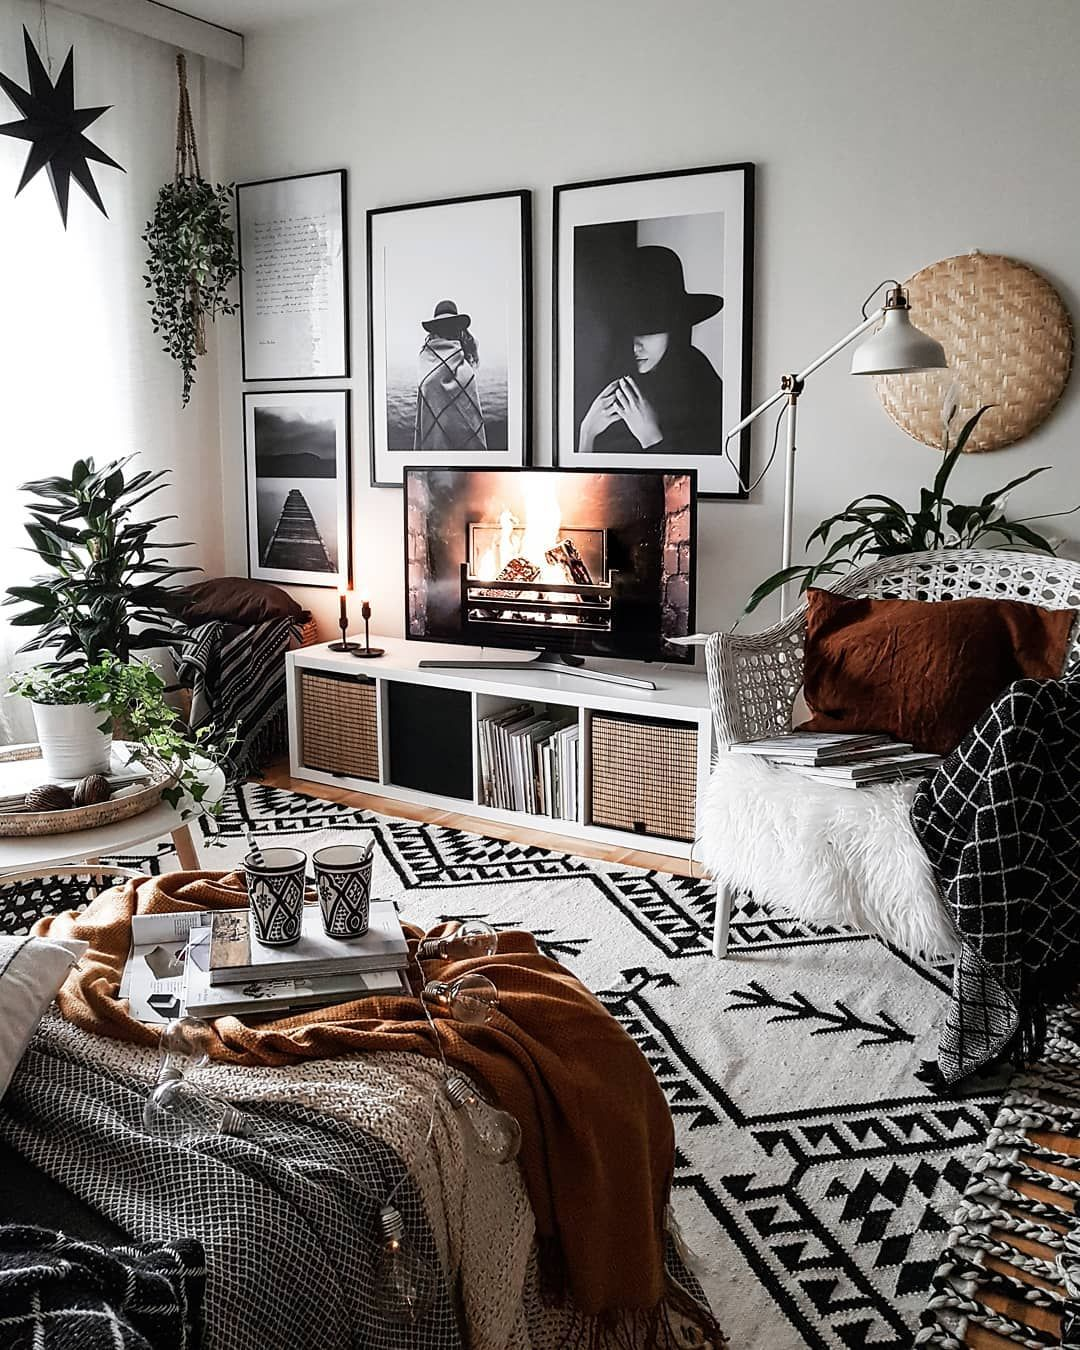 "Monochrome | Bohemian | Scandi on Instagram: ""Hello lovelies! I've been on a sick leave today cause of the shoulder pain. Nothing much to do but cozy up on a couch watching movies... I…"" #monochromewatches"